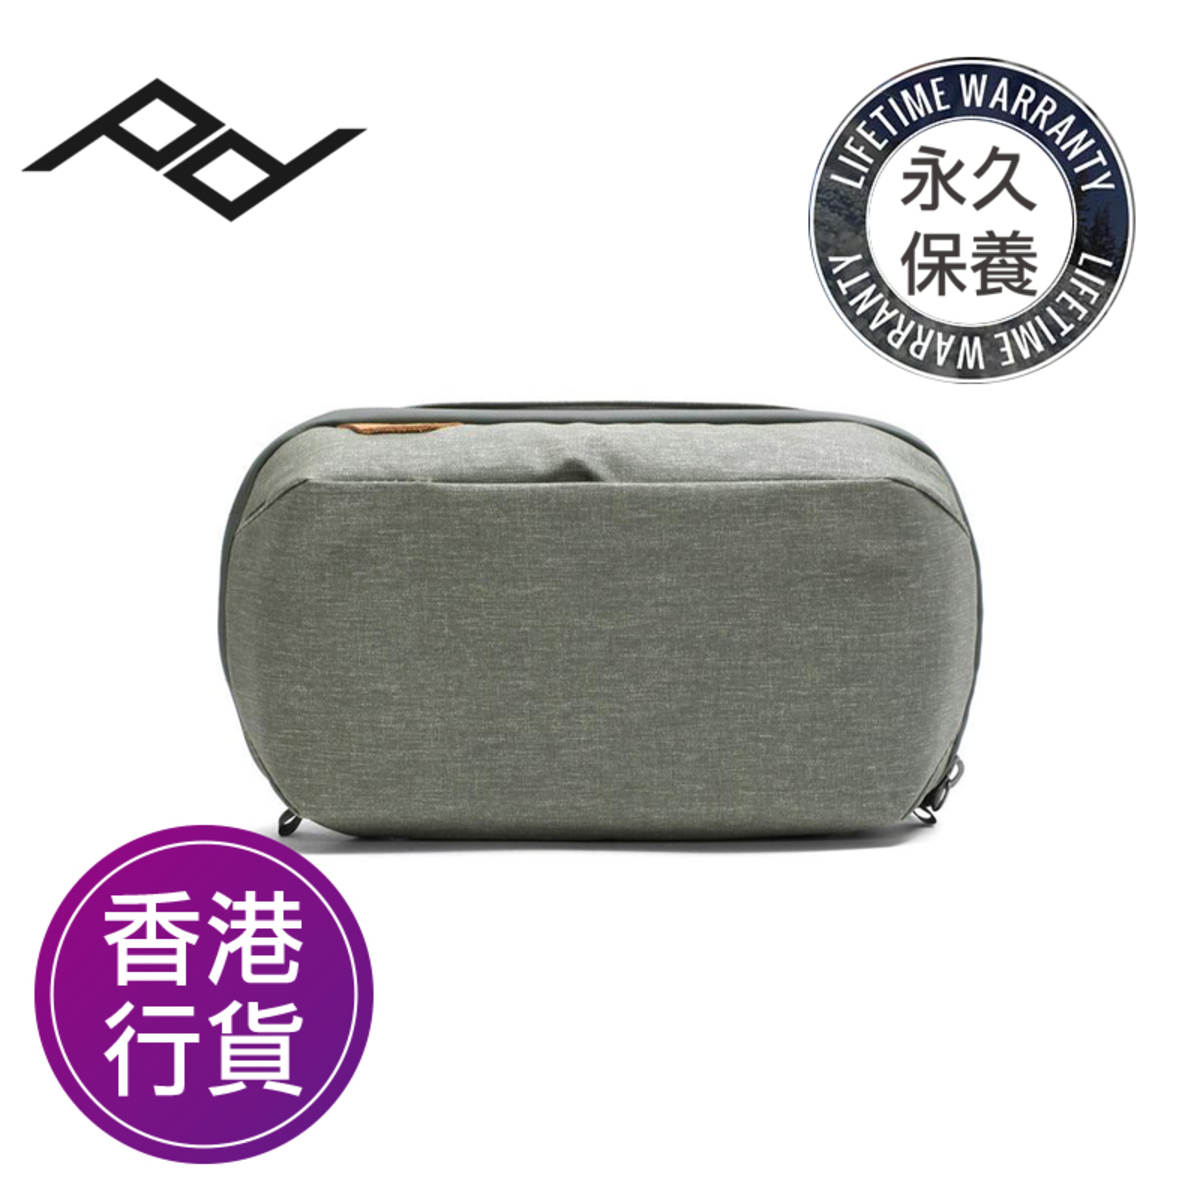 WASH POUCH- 多功能 存儲包 收納包 SAGE